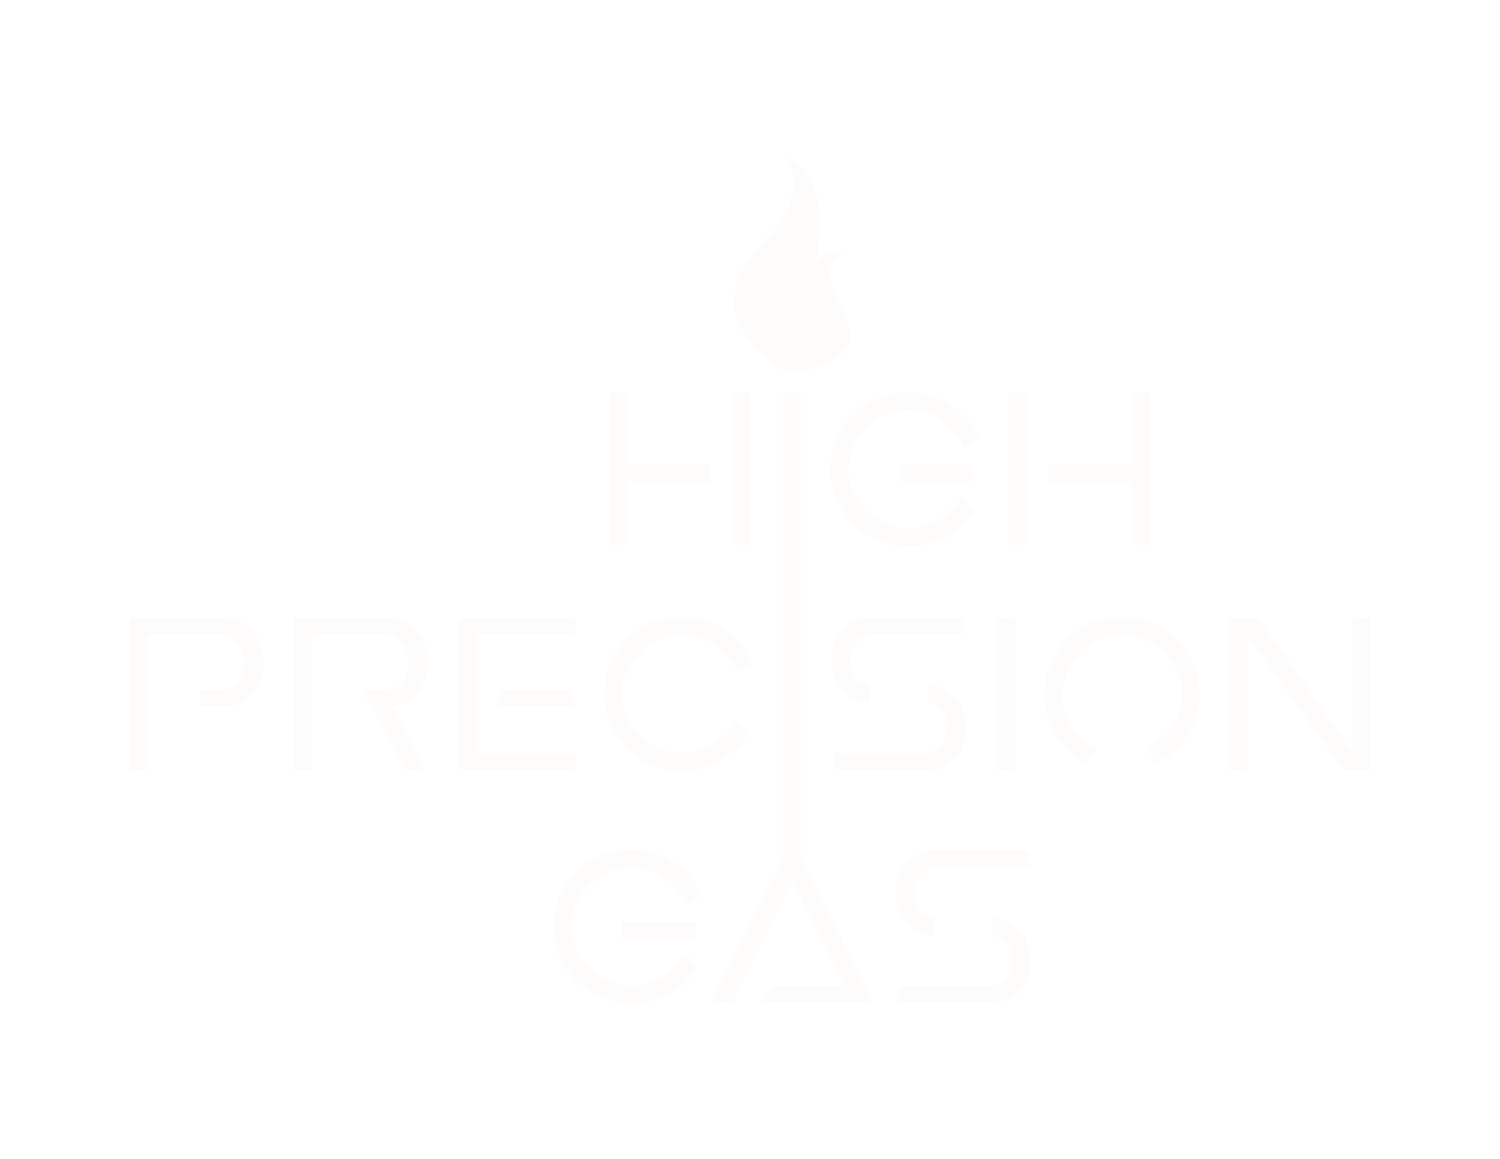 High Precision Gas - Extraction Grade™ LPG